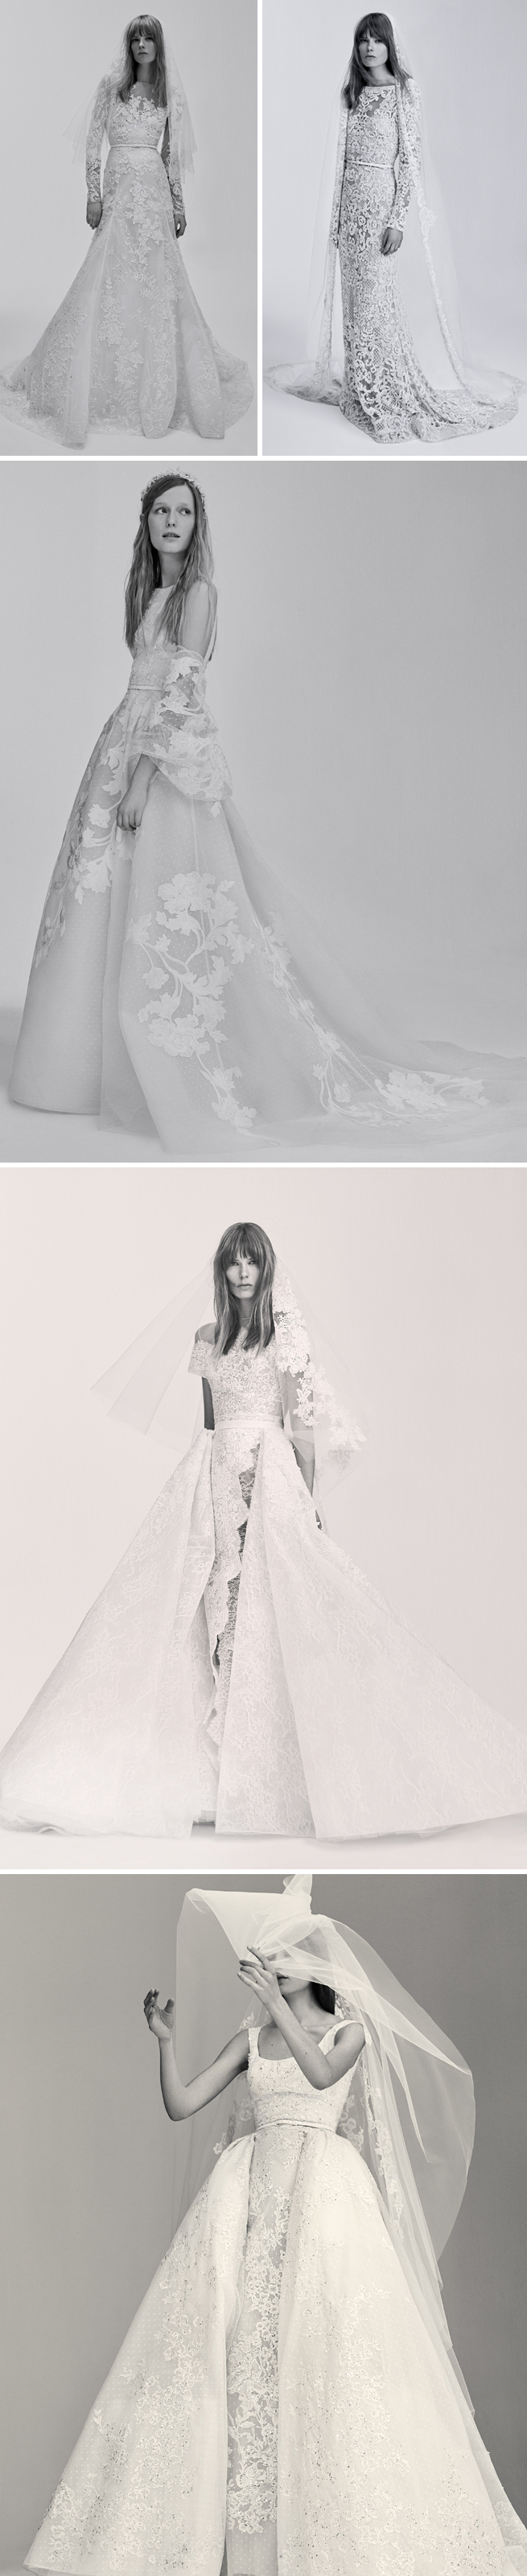 Elie Saab, Elie Saab Bridal, Bridal Gowns, Perfect wedding Blog, Perfect Wedding Magazine, Bridal Fashion, Oui, Haute Couture